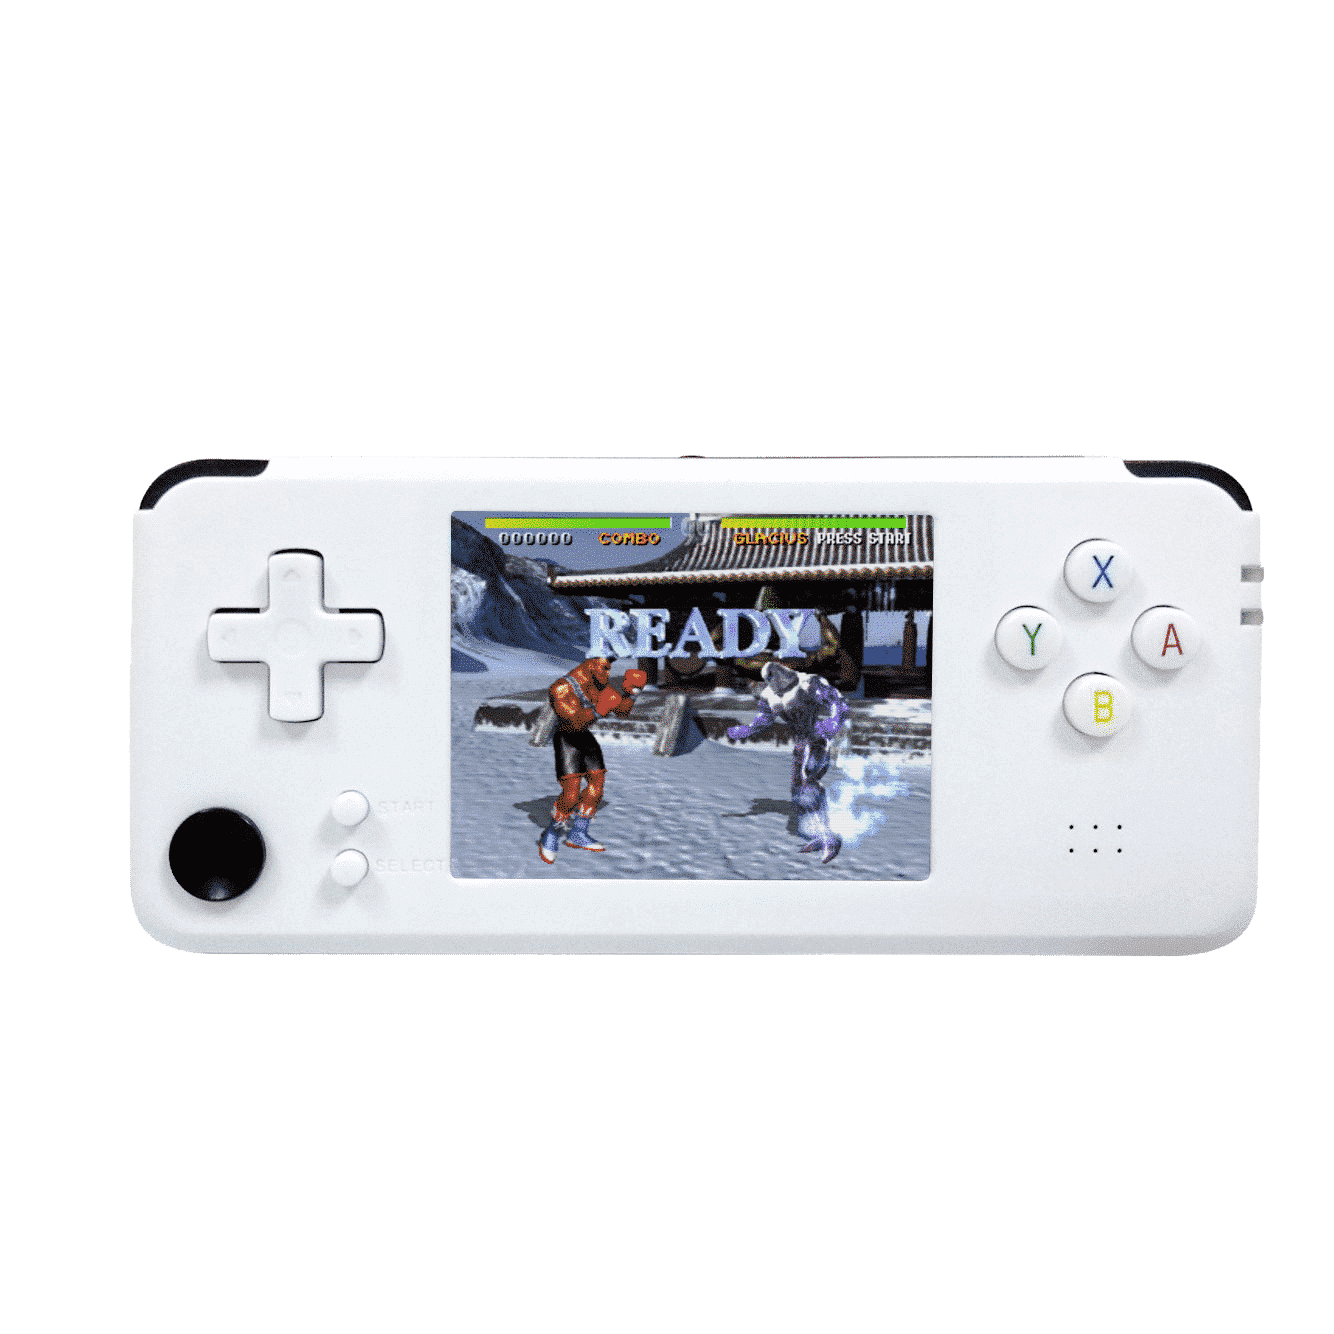 DroiX RS-97 Plus V2 Open Dingux Retro Gaming Console Handheld - White